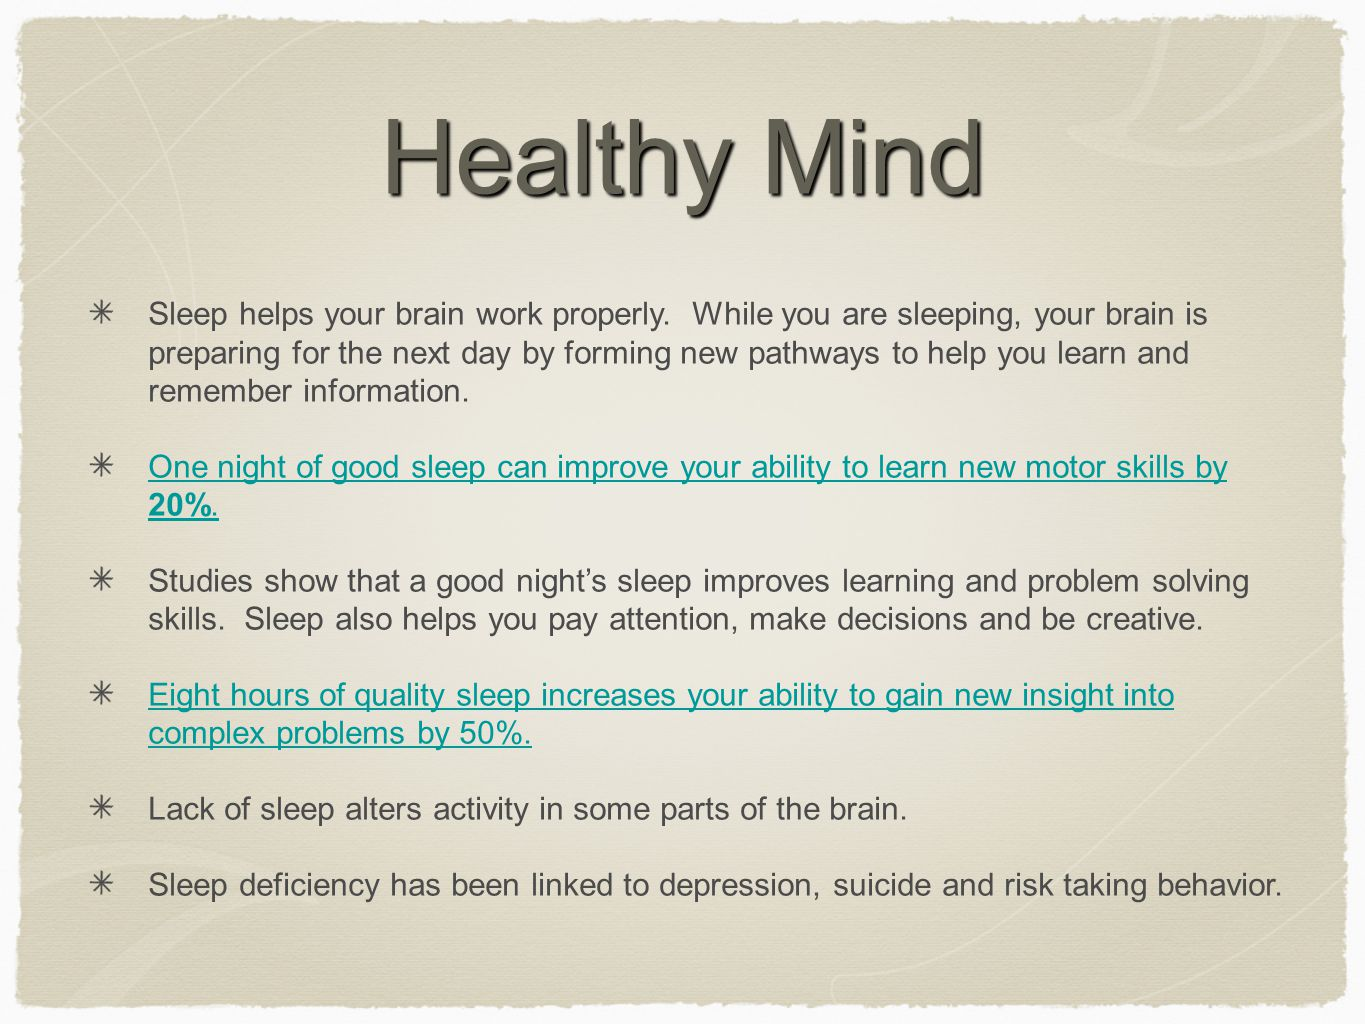 Healthy Mind Sleep helps your brain work properly. While you are sleeping, your brain is preparing for the next day by forming new pathways to help yo